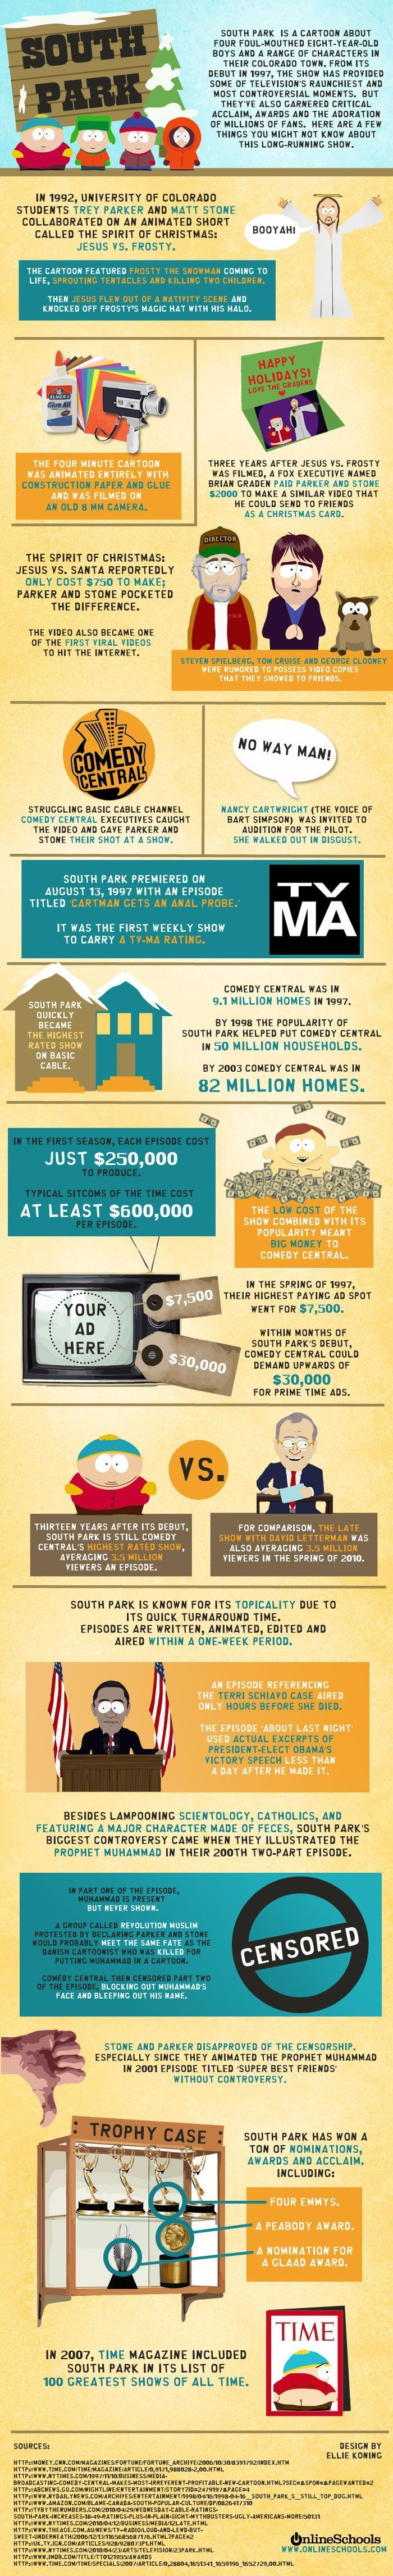 Interesting Facts About South Park (infographic)